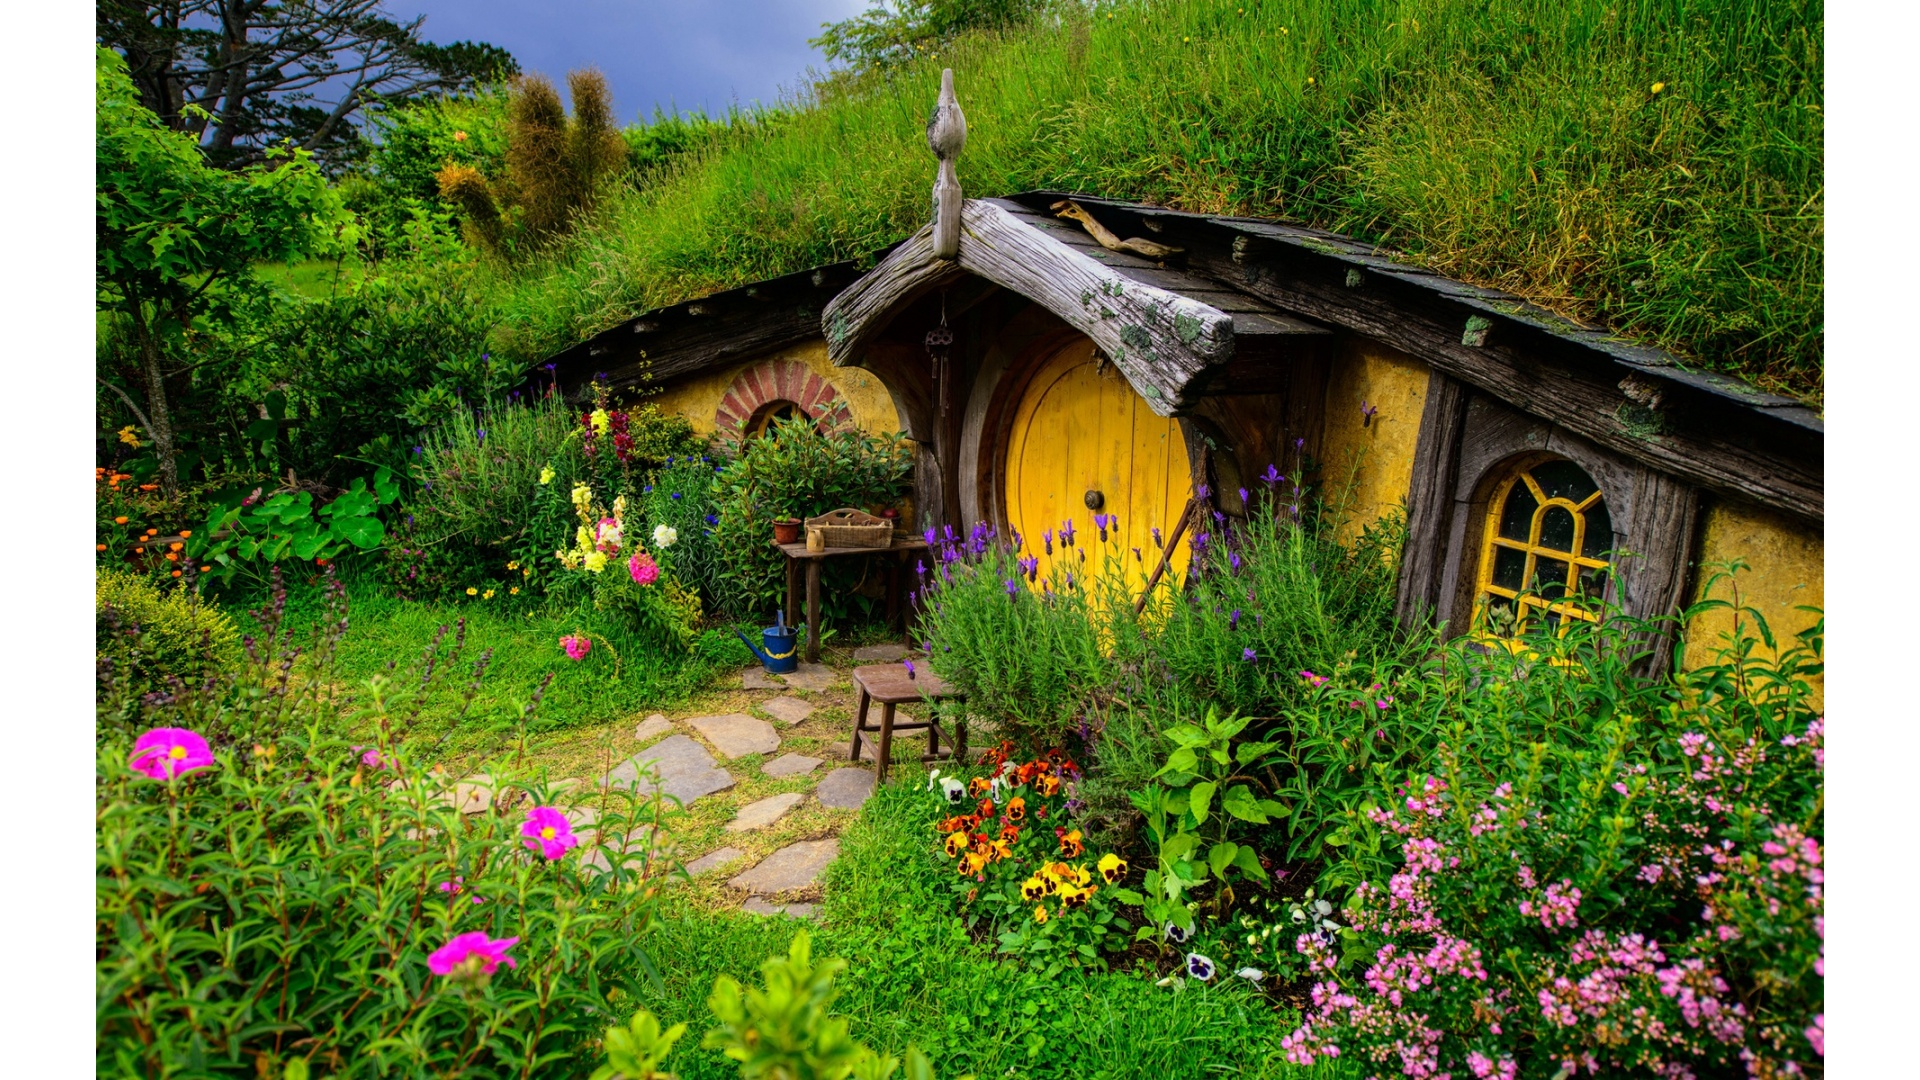 Resoloution 1920x1080 Hobbit Hole Size 1447345 Download Close 1920x1080